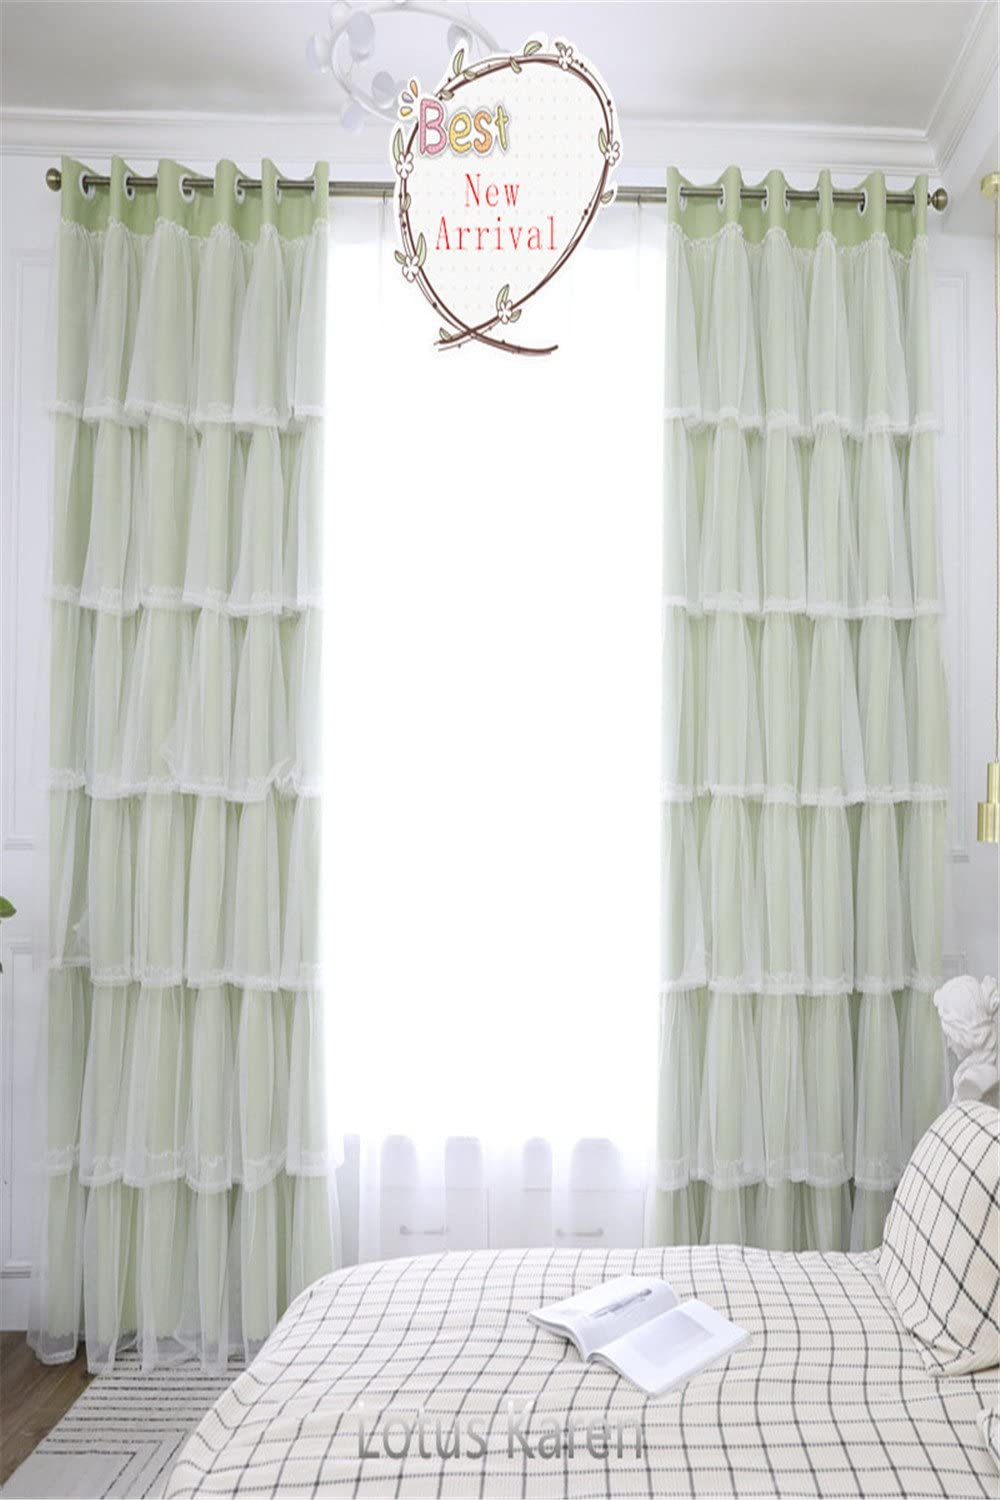 Lotus Karen Sweet Ruffle Curtains Romantic Green Princess Room Curtains For Girls Bedroom Tulle Grommet Blackout Curtain 2 Panels Set Amazon Co Uk Kitchen Home